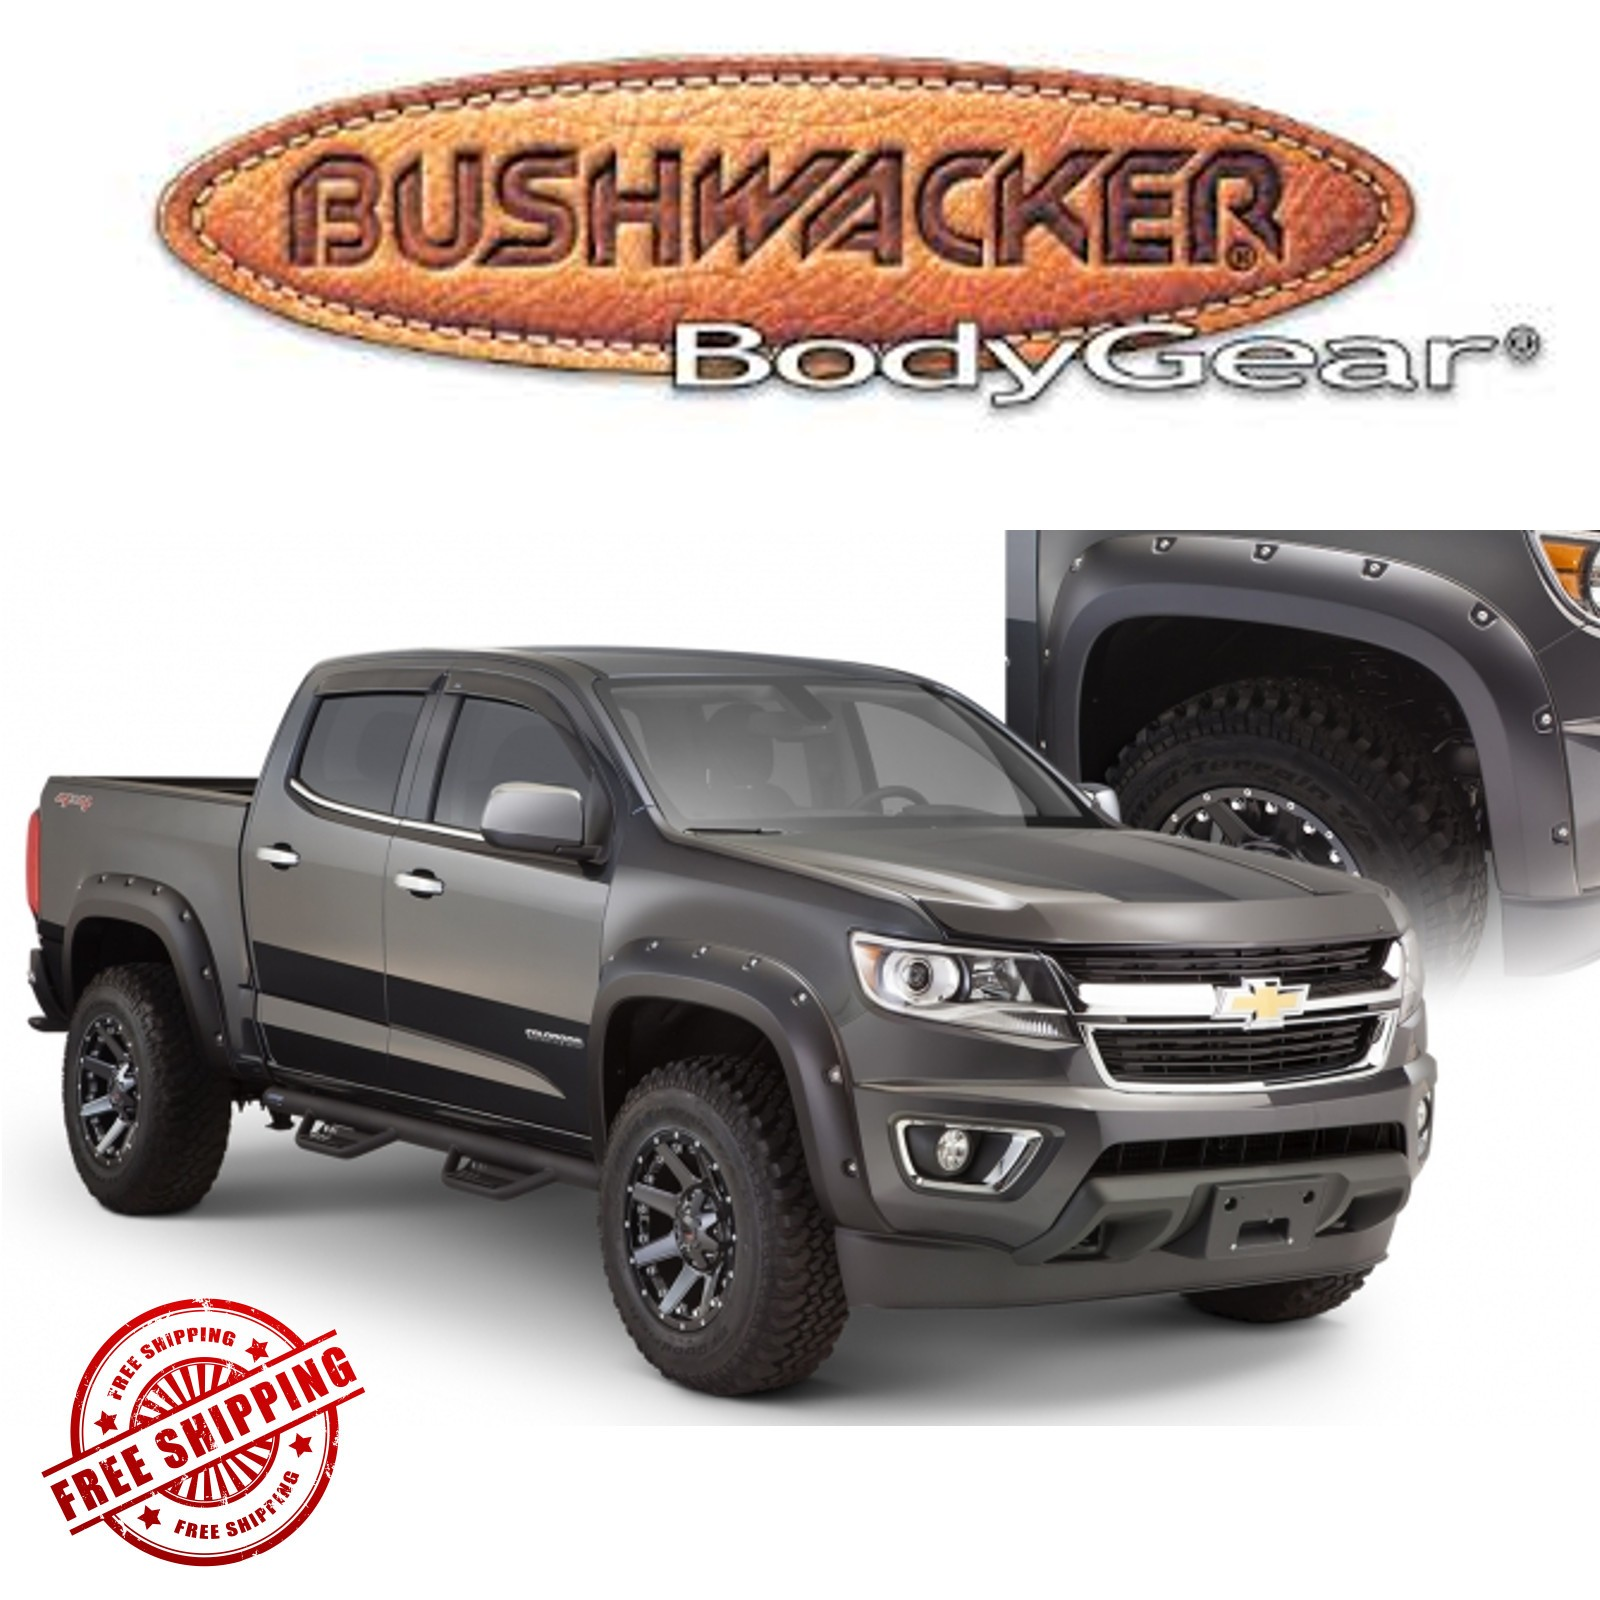 small resolution of details about bushwacker matte black pocket style fender flares fits 2015 2019 chevy colorado